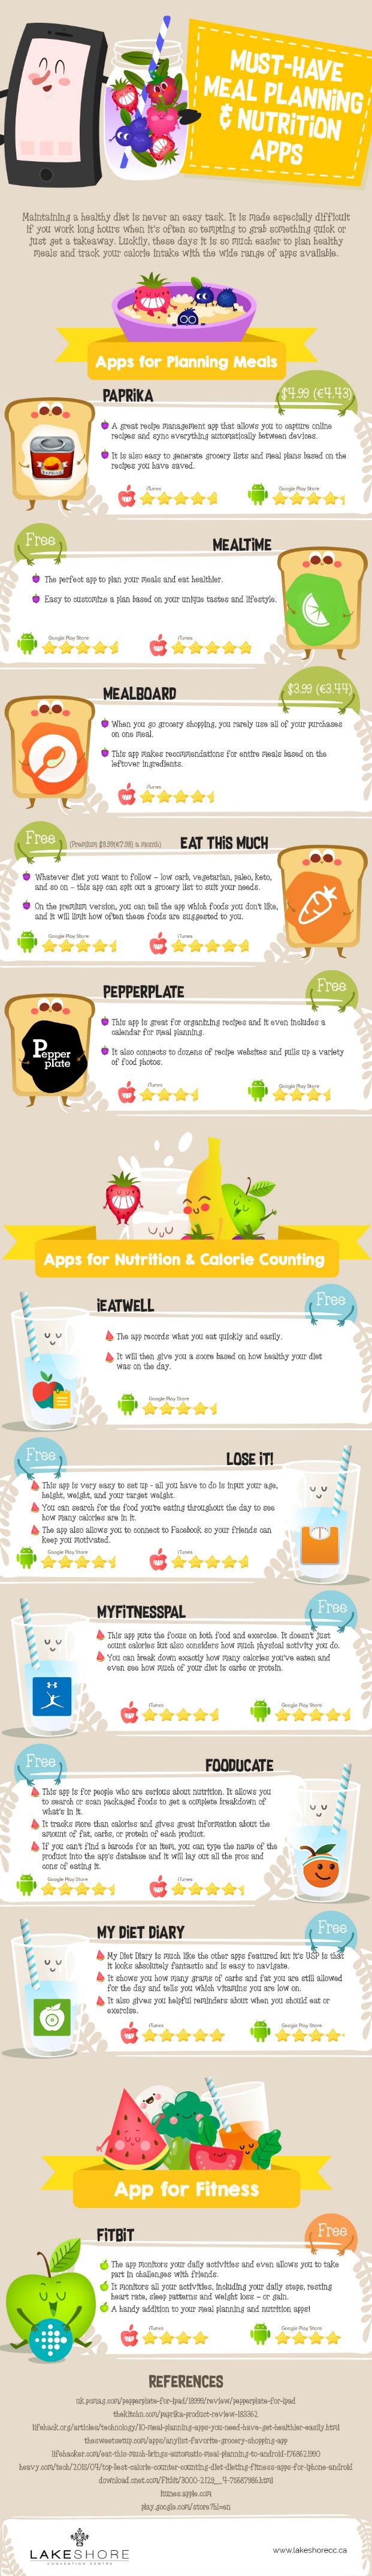 11 Best Meal Planning and Nutrition Apps Infographic